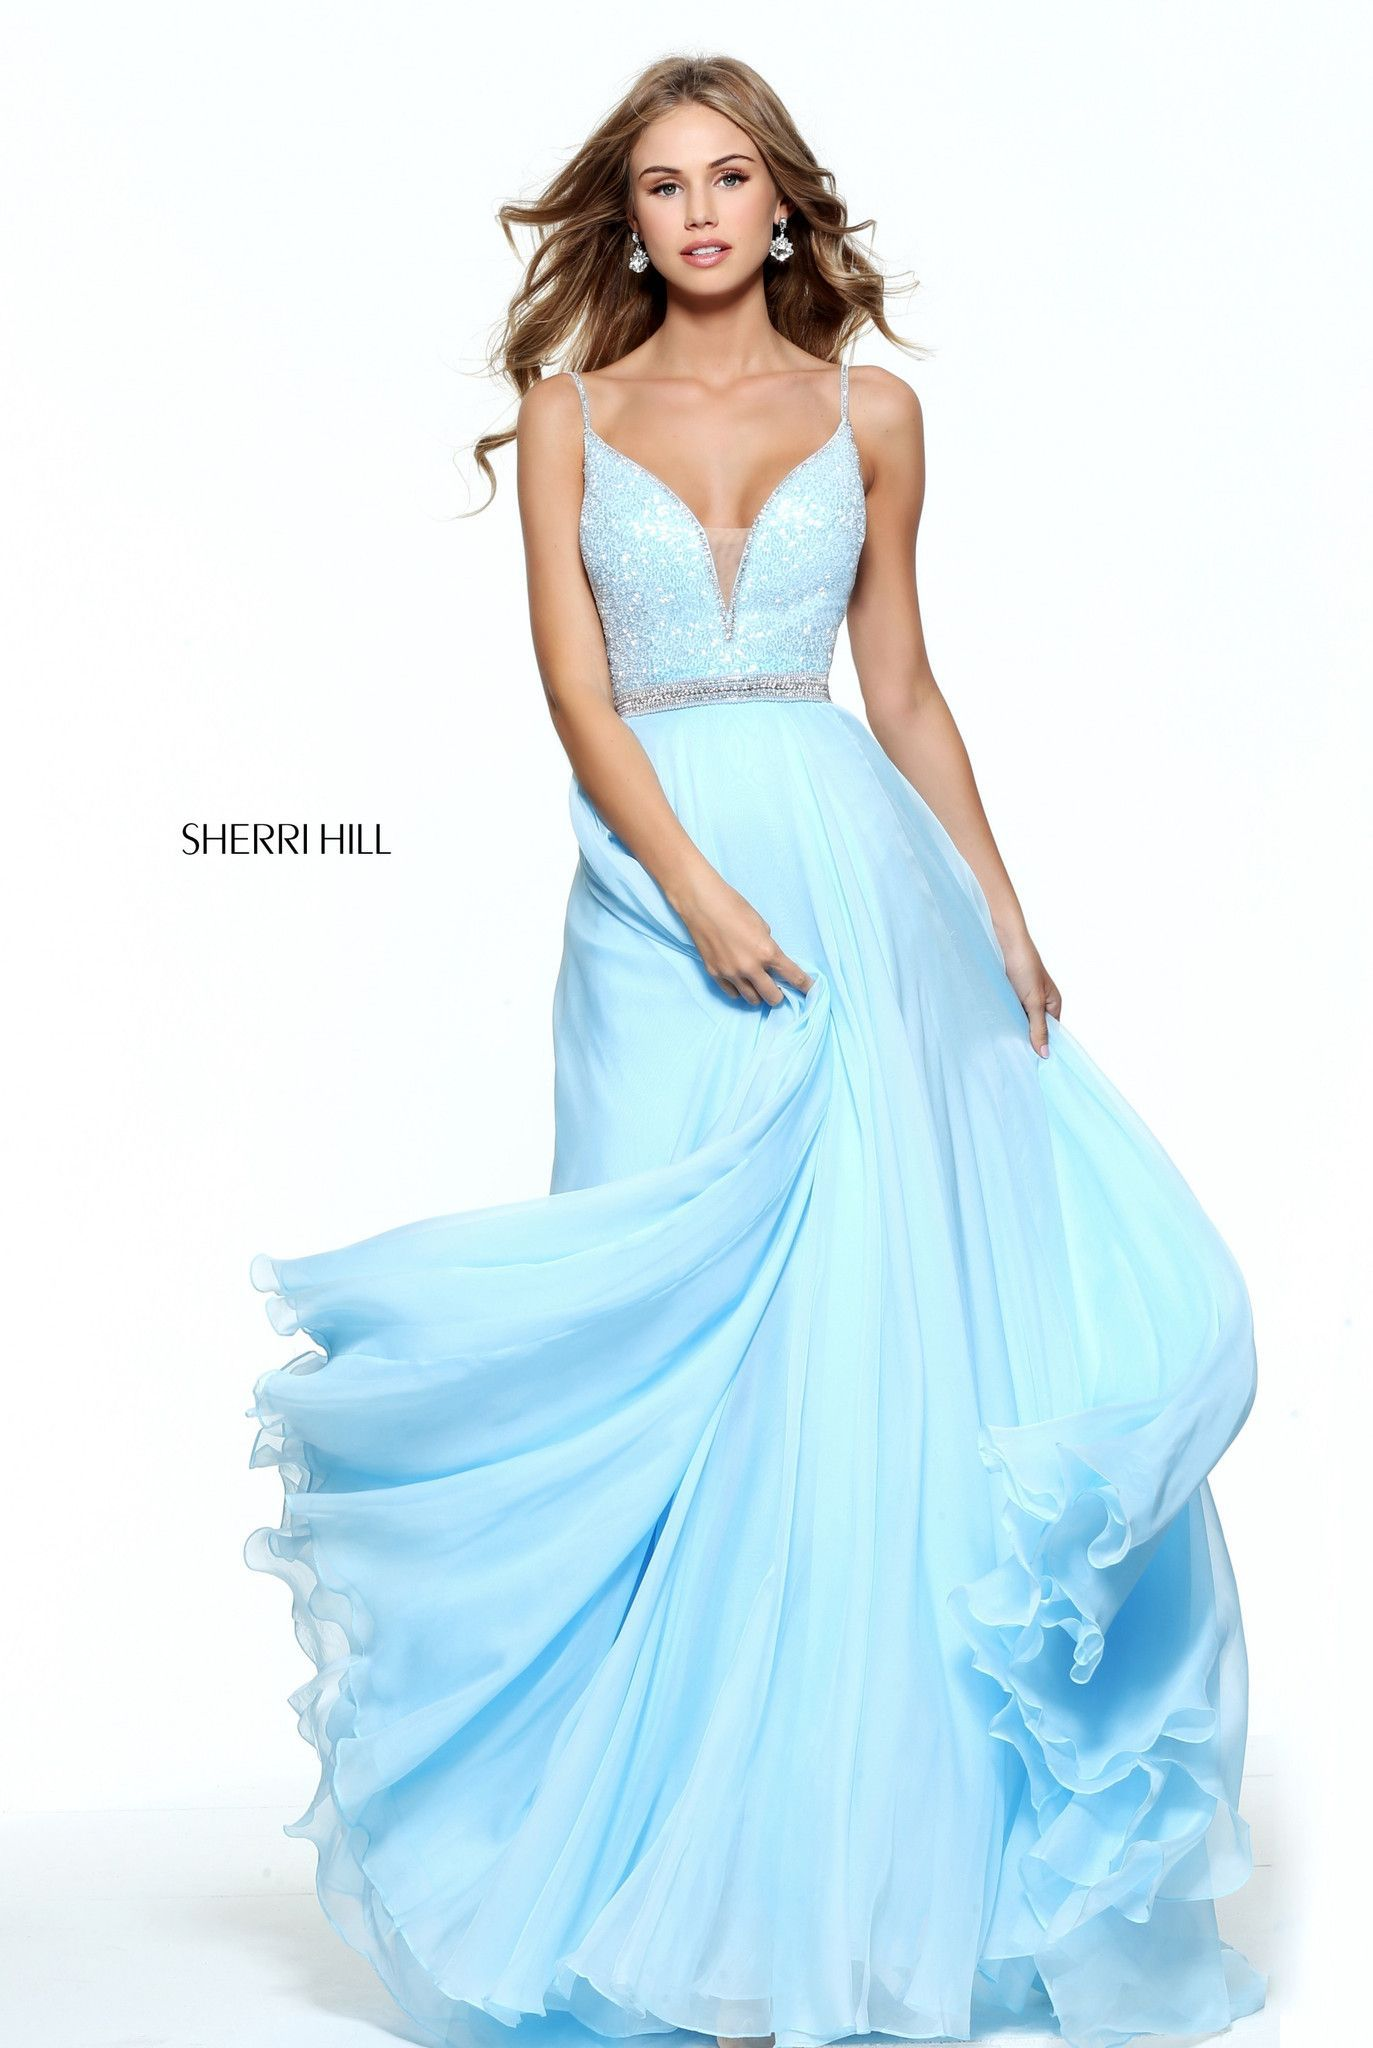 In stock now red size 14 Sherri Hill prom dress style 51009 | Prom ...